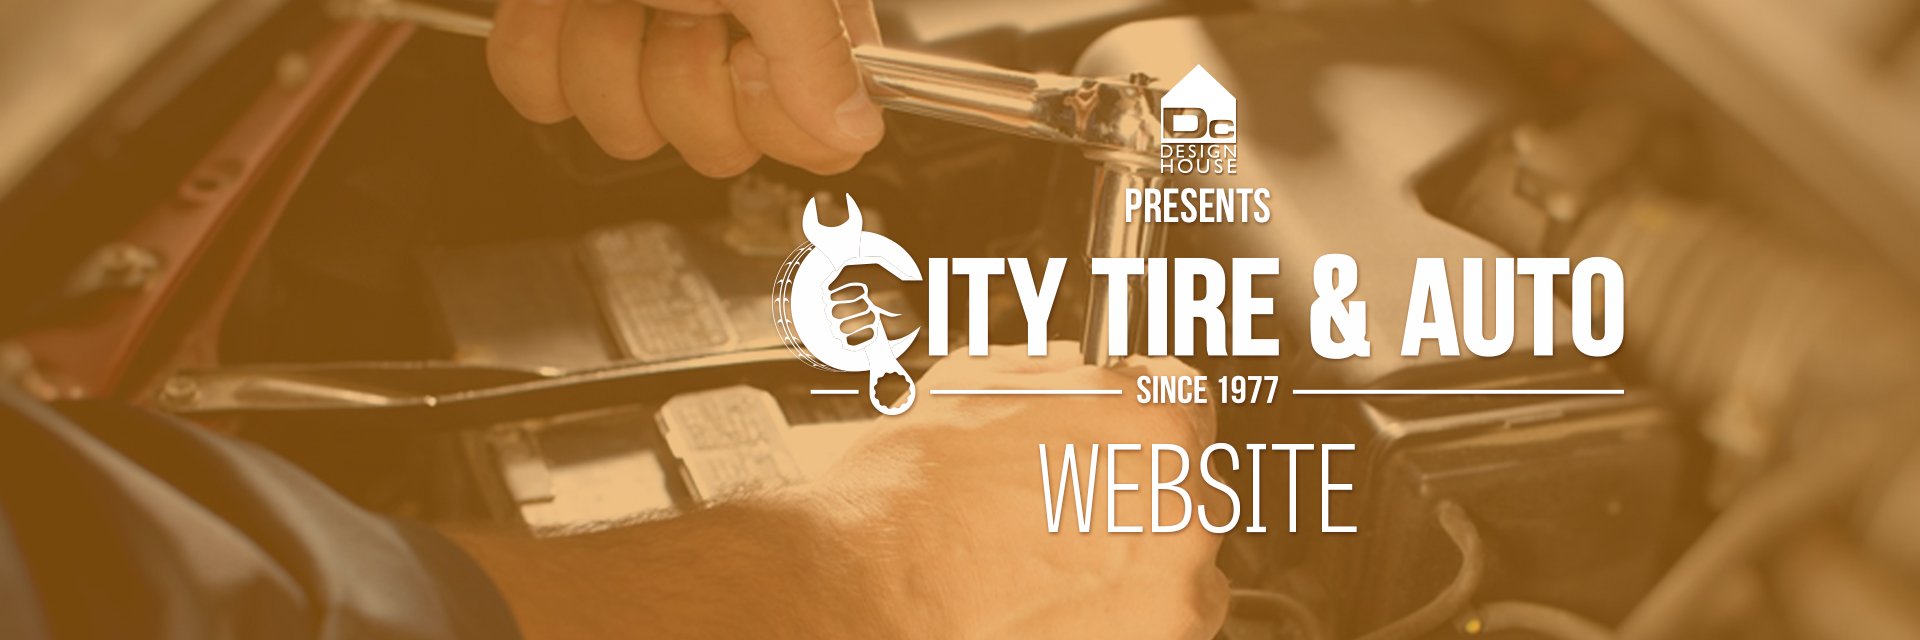 Driving Forward with City Tire